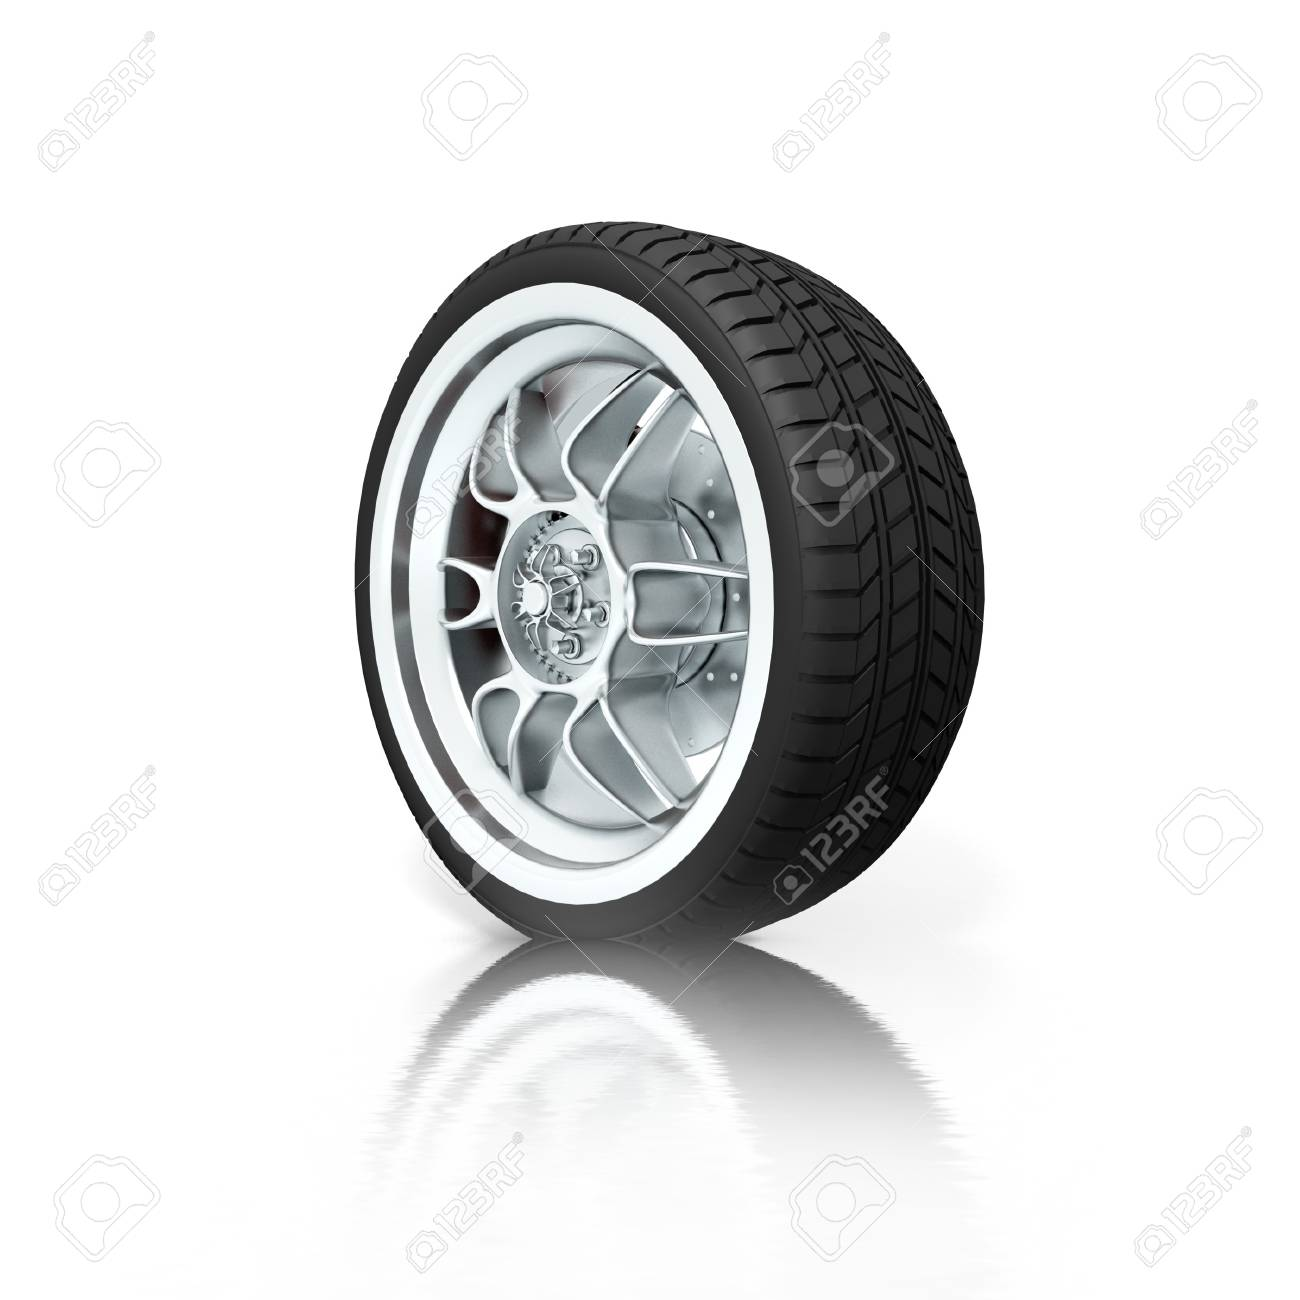 Isolated wheel on white background Stock Photo - 7324710